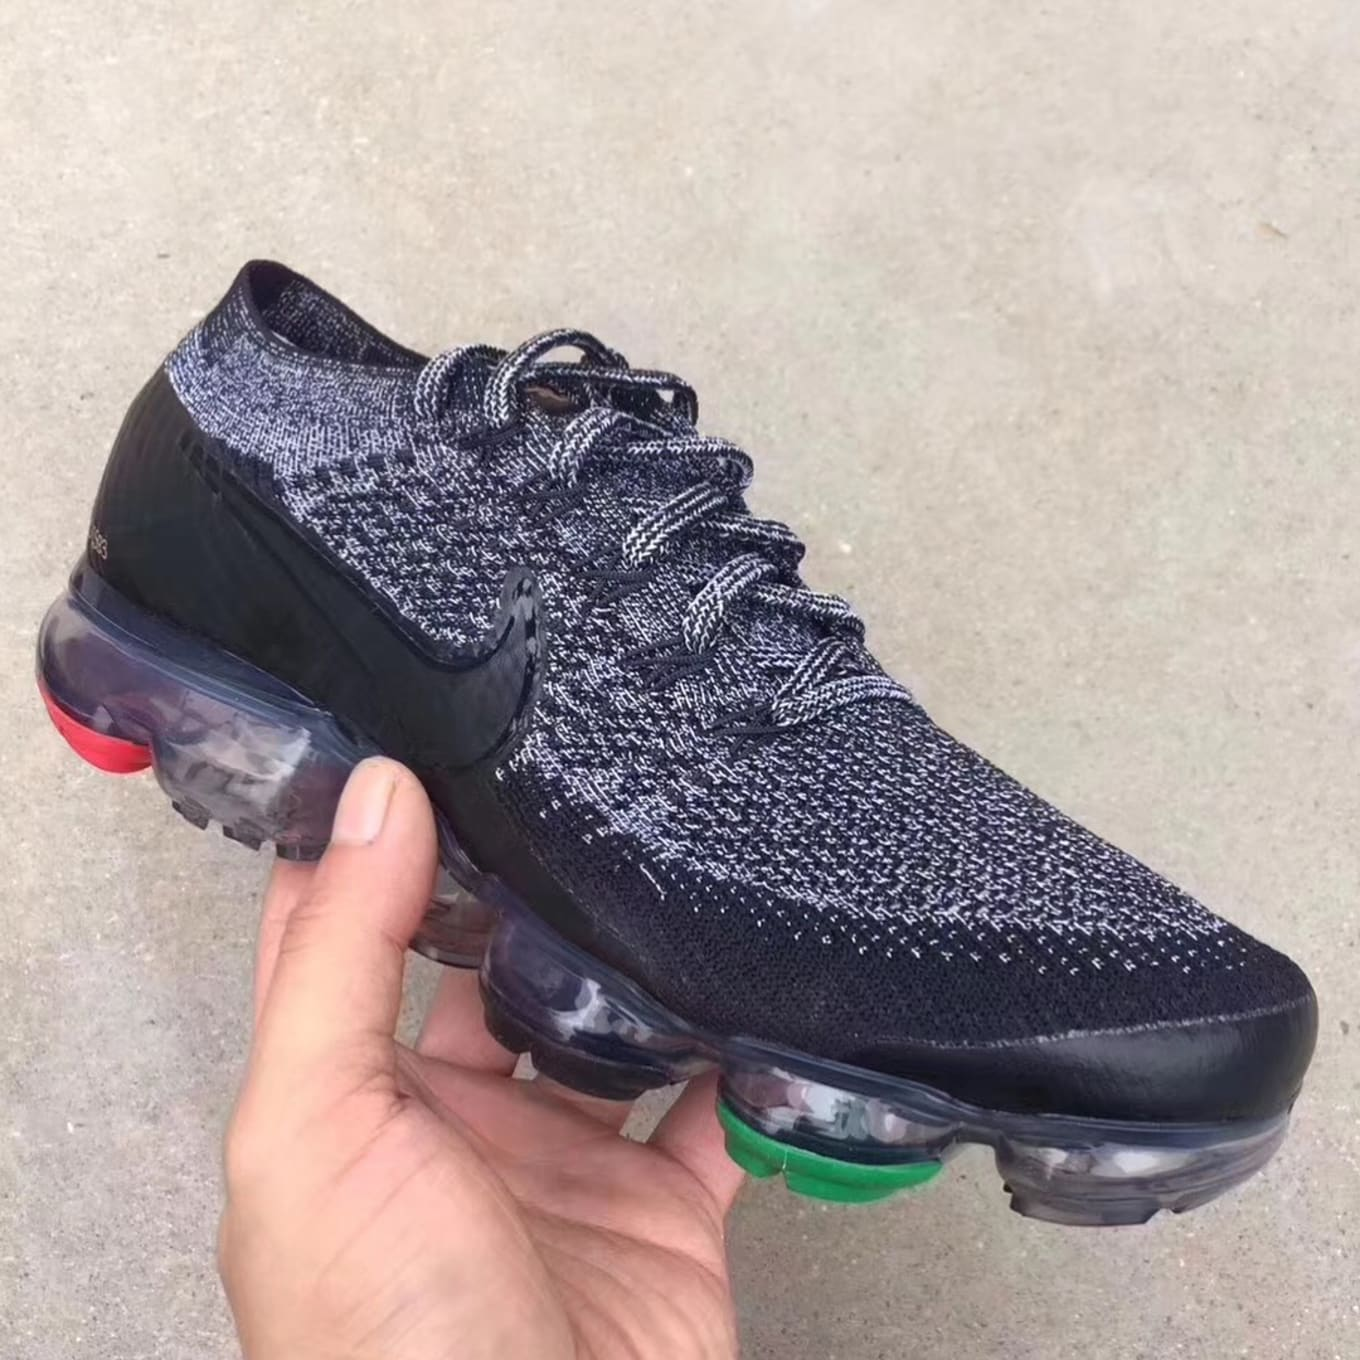 ba0042dce41 Nike Made an Air VaporMax for Black History Month